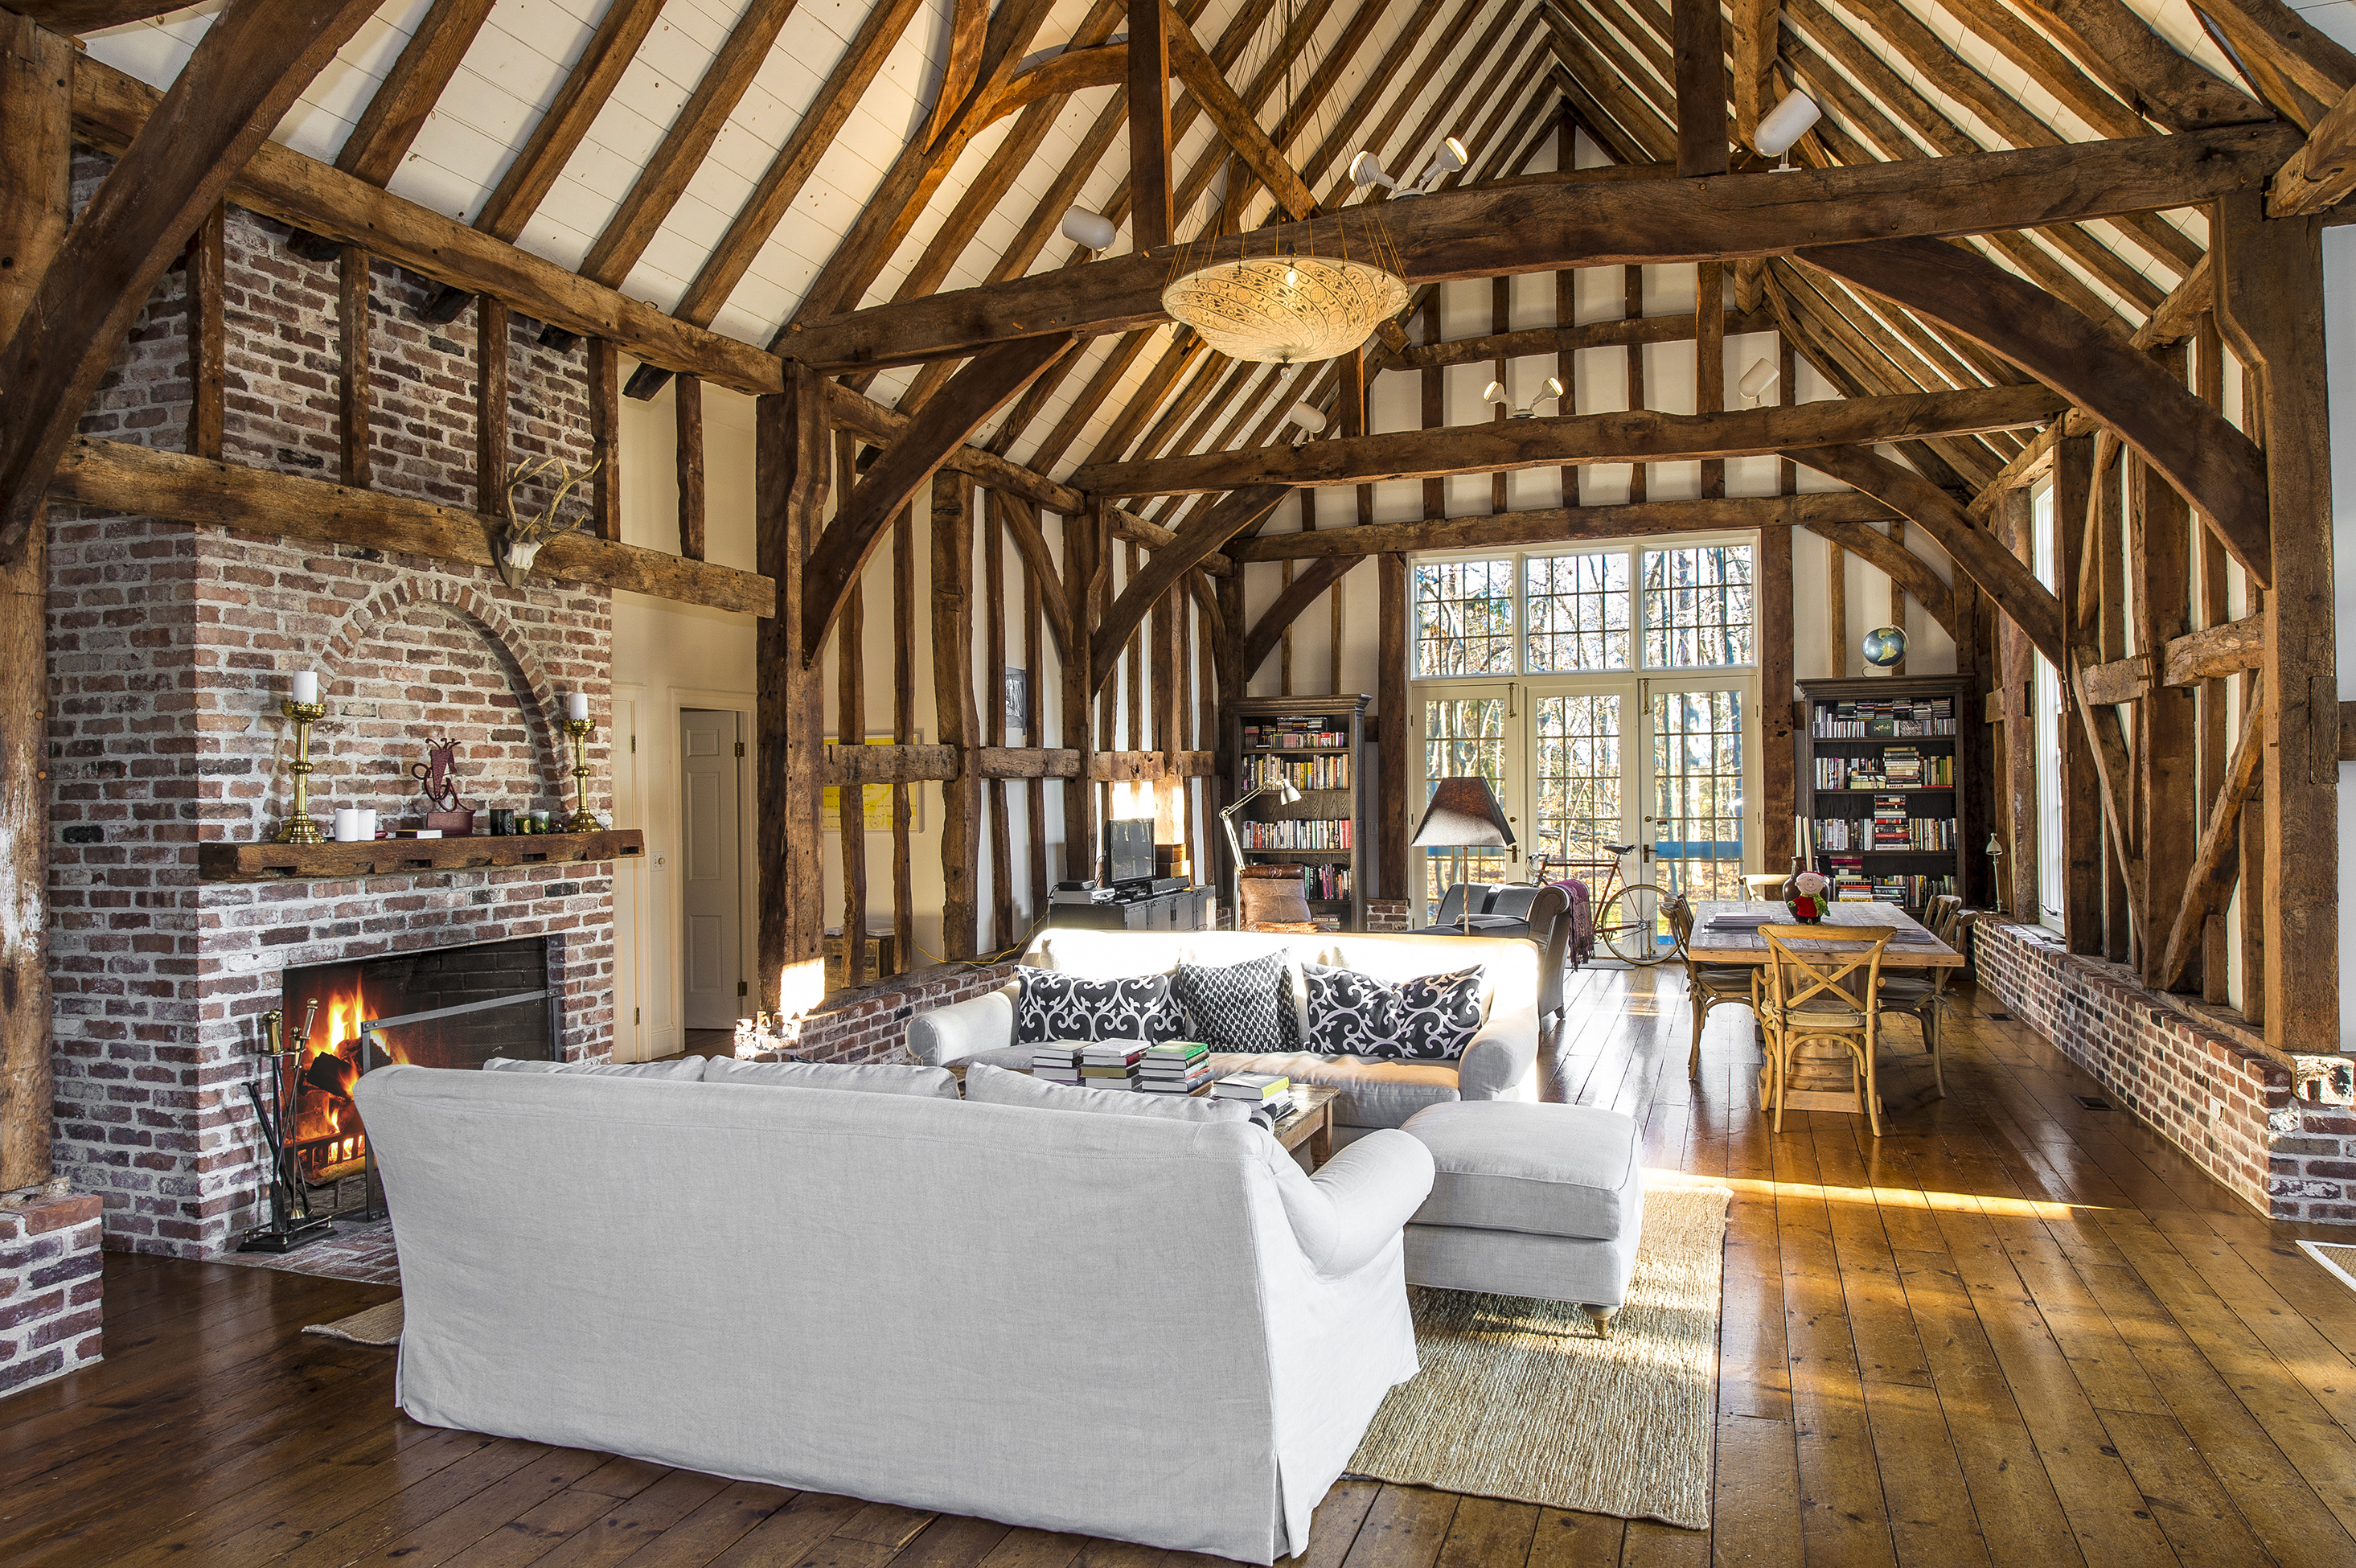 New Kdhamptons Featured Property A 17th Century English